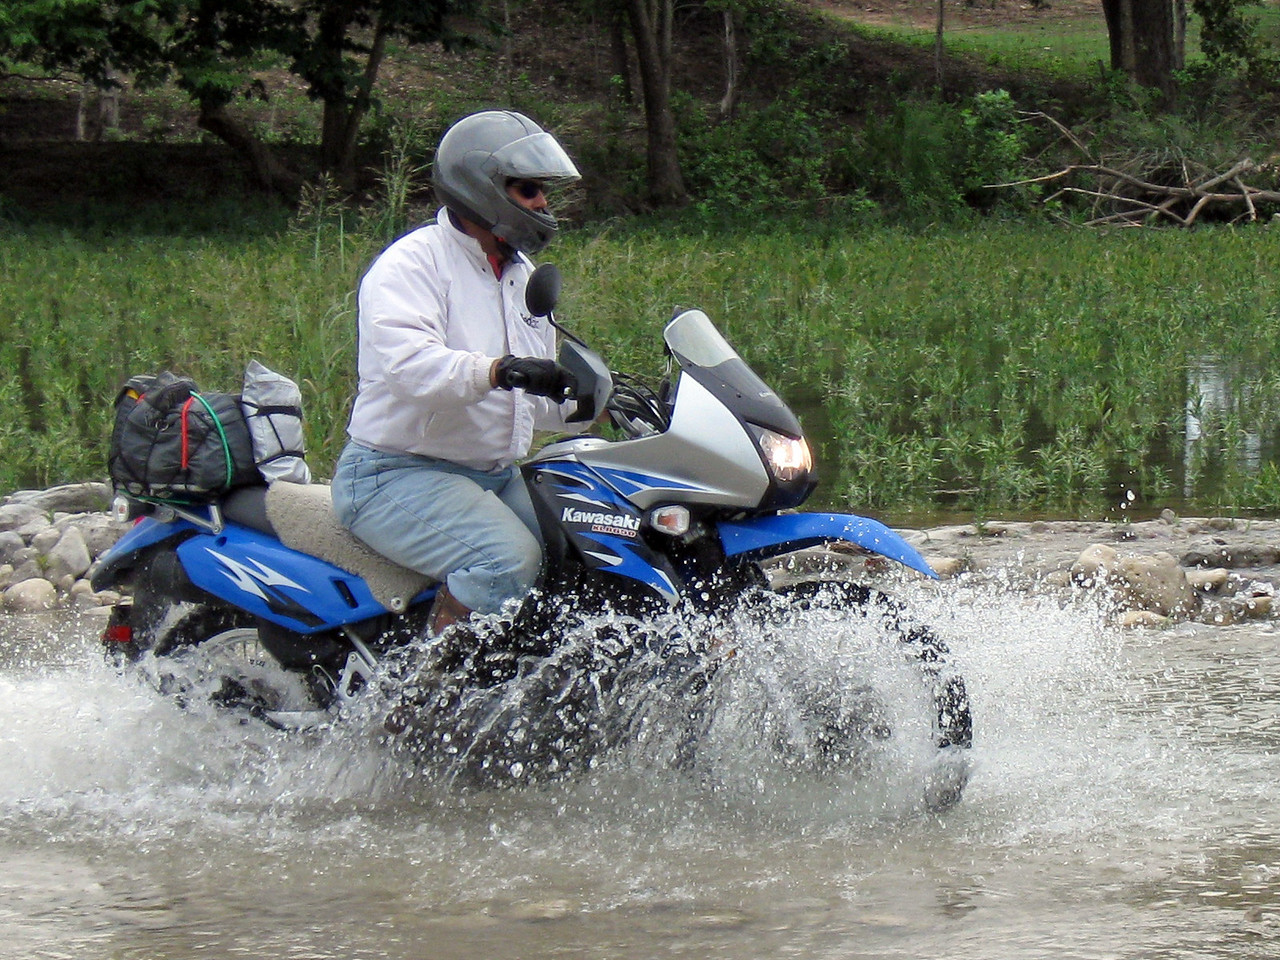 Anthony on water crossing, Texas hill country